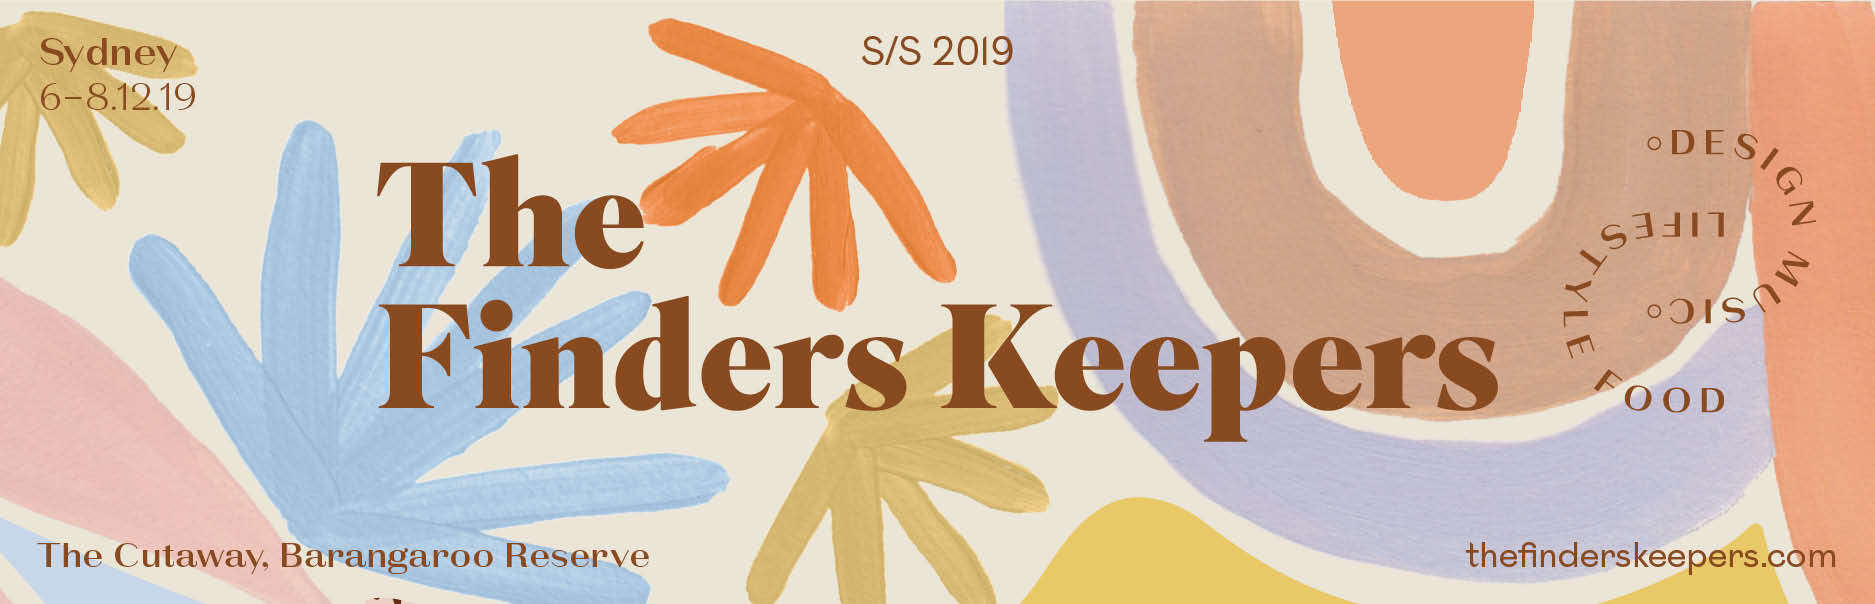 Gaia Soul Designs - The Finders Keepers